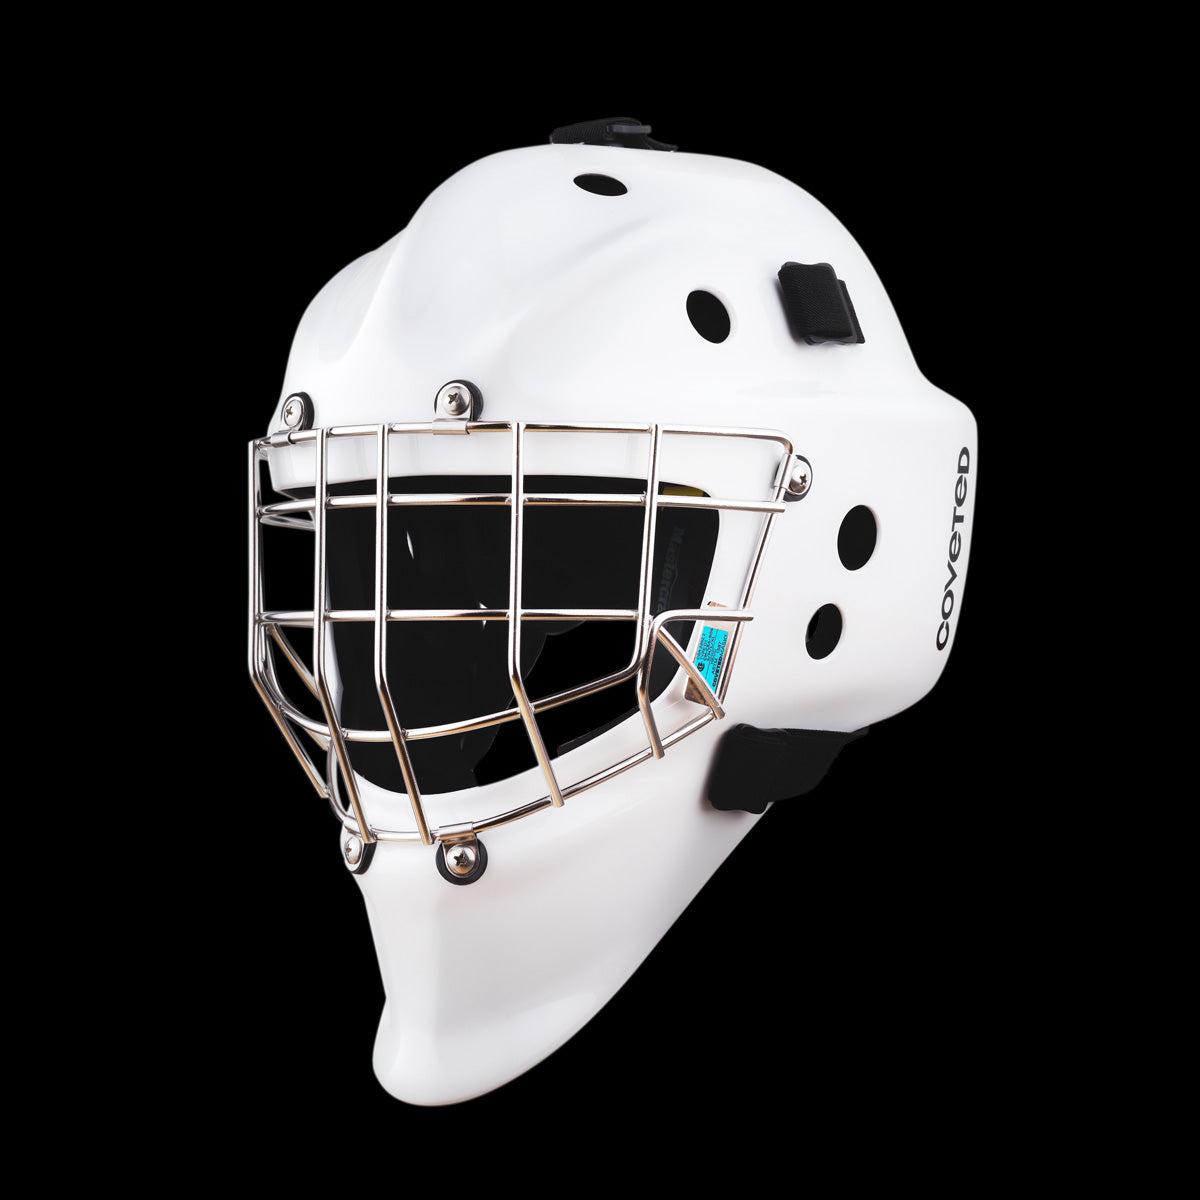 Coveted 906 Mask Review